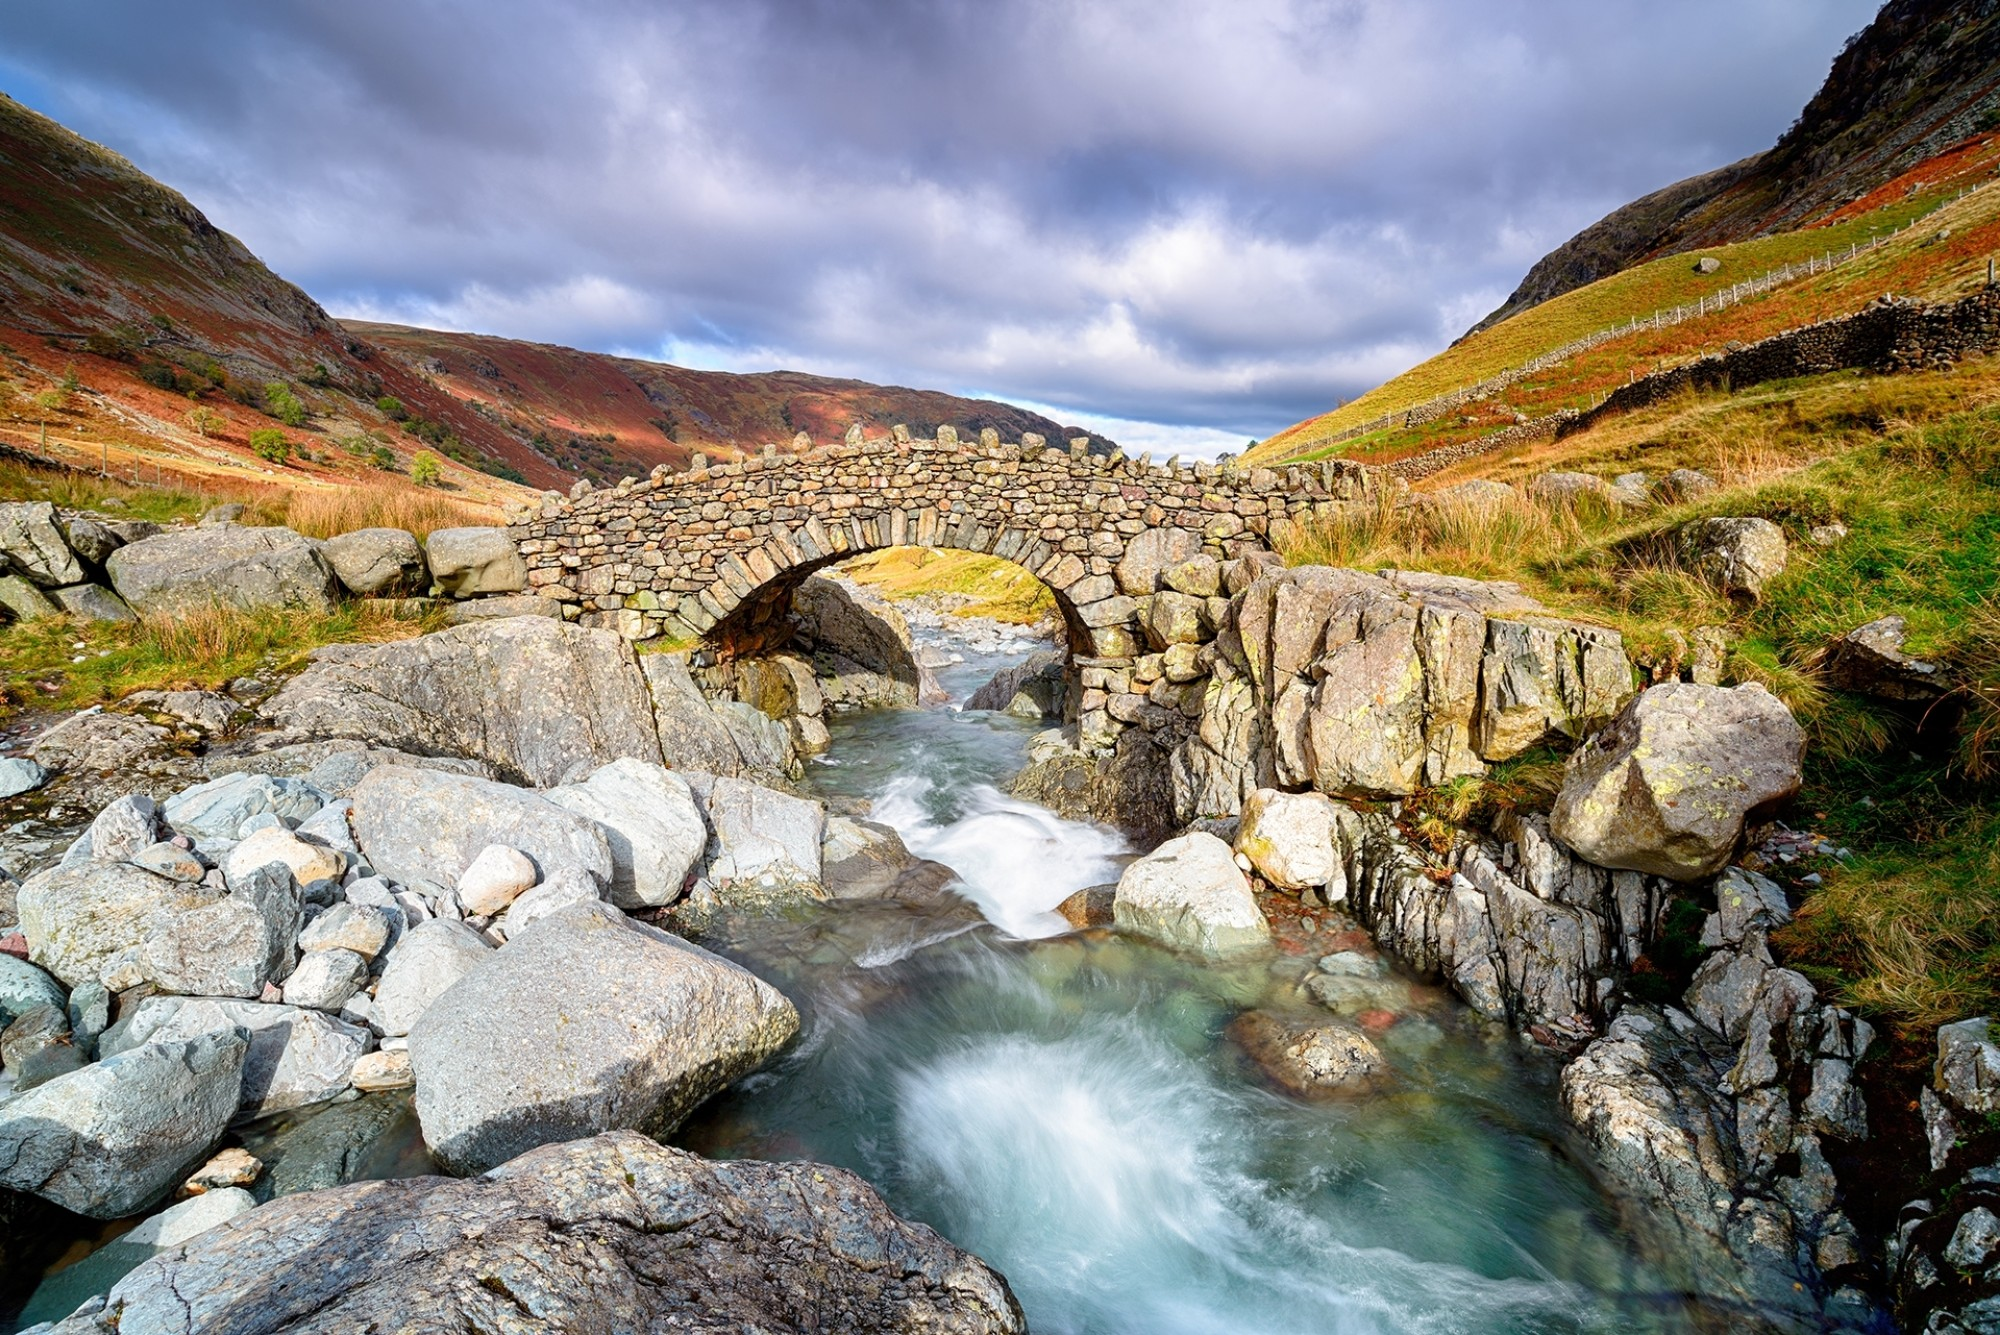 Stockley-Bridge-crossing-the-river-Derwent-near-Seathwaite-in-the-Lake-District-National-Park-in-Cumbria